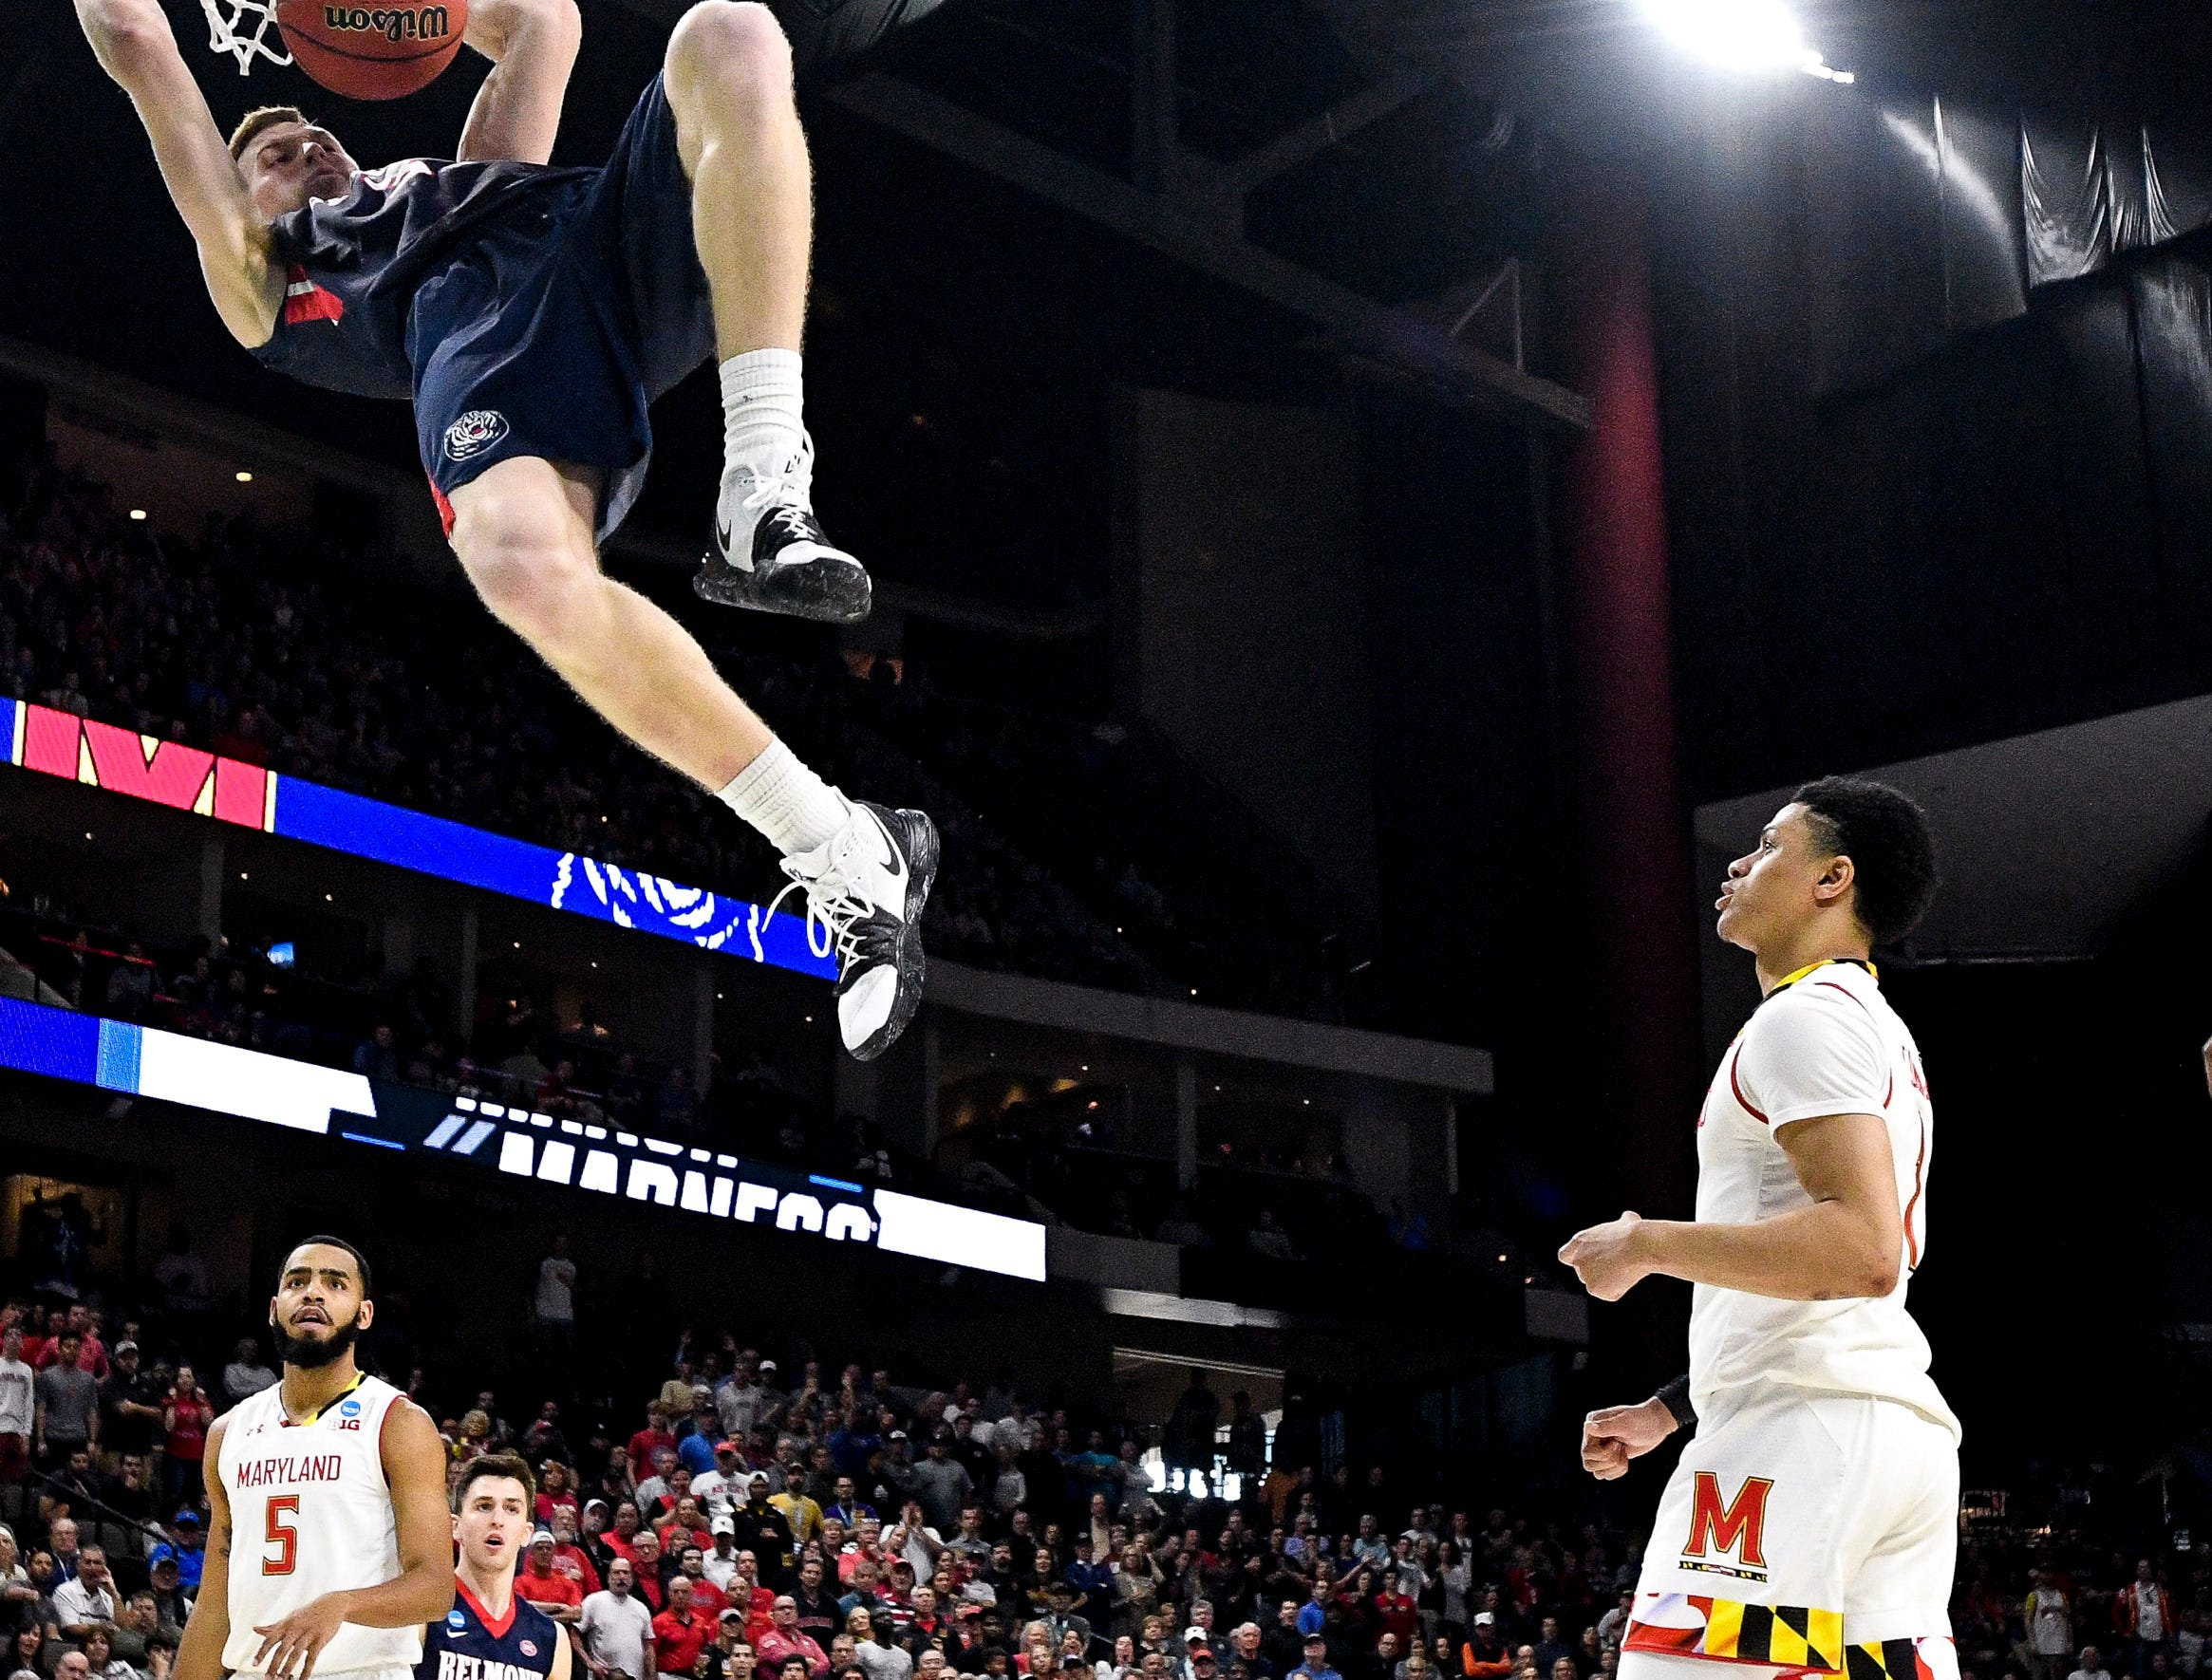 Belmont guard/forward Dylan Windler (3) dunks against Maryland during the second half of the first-round NCAA college basketball tournament game at VyStar Veterans Memorial Arena in Jacksonville, Fla., Thursday, March 21, 2019.